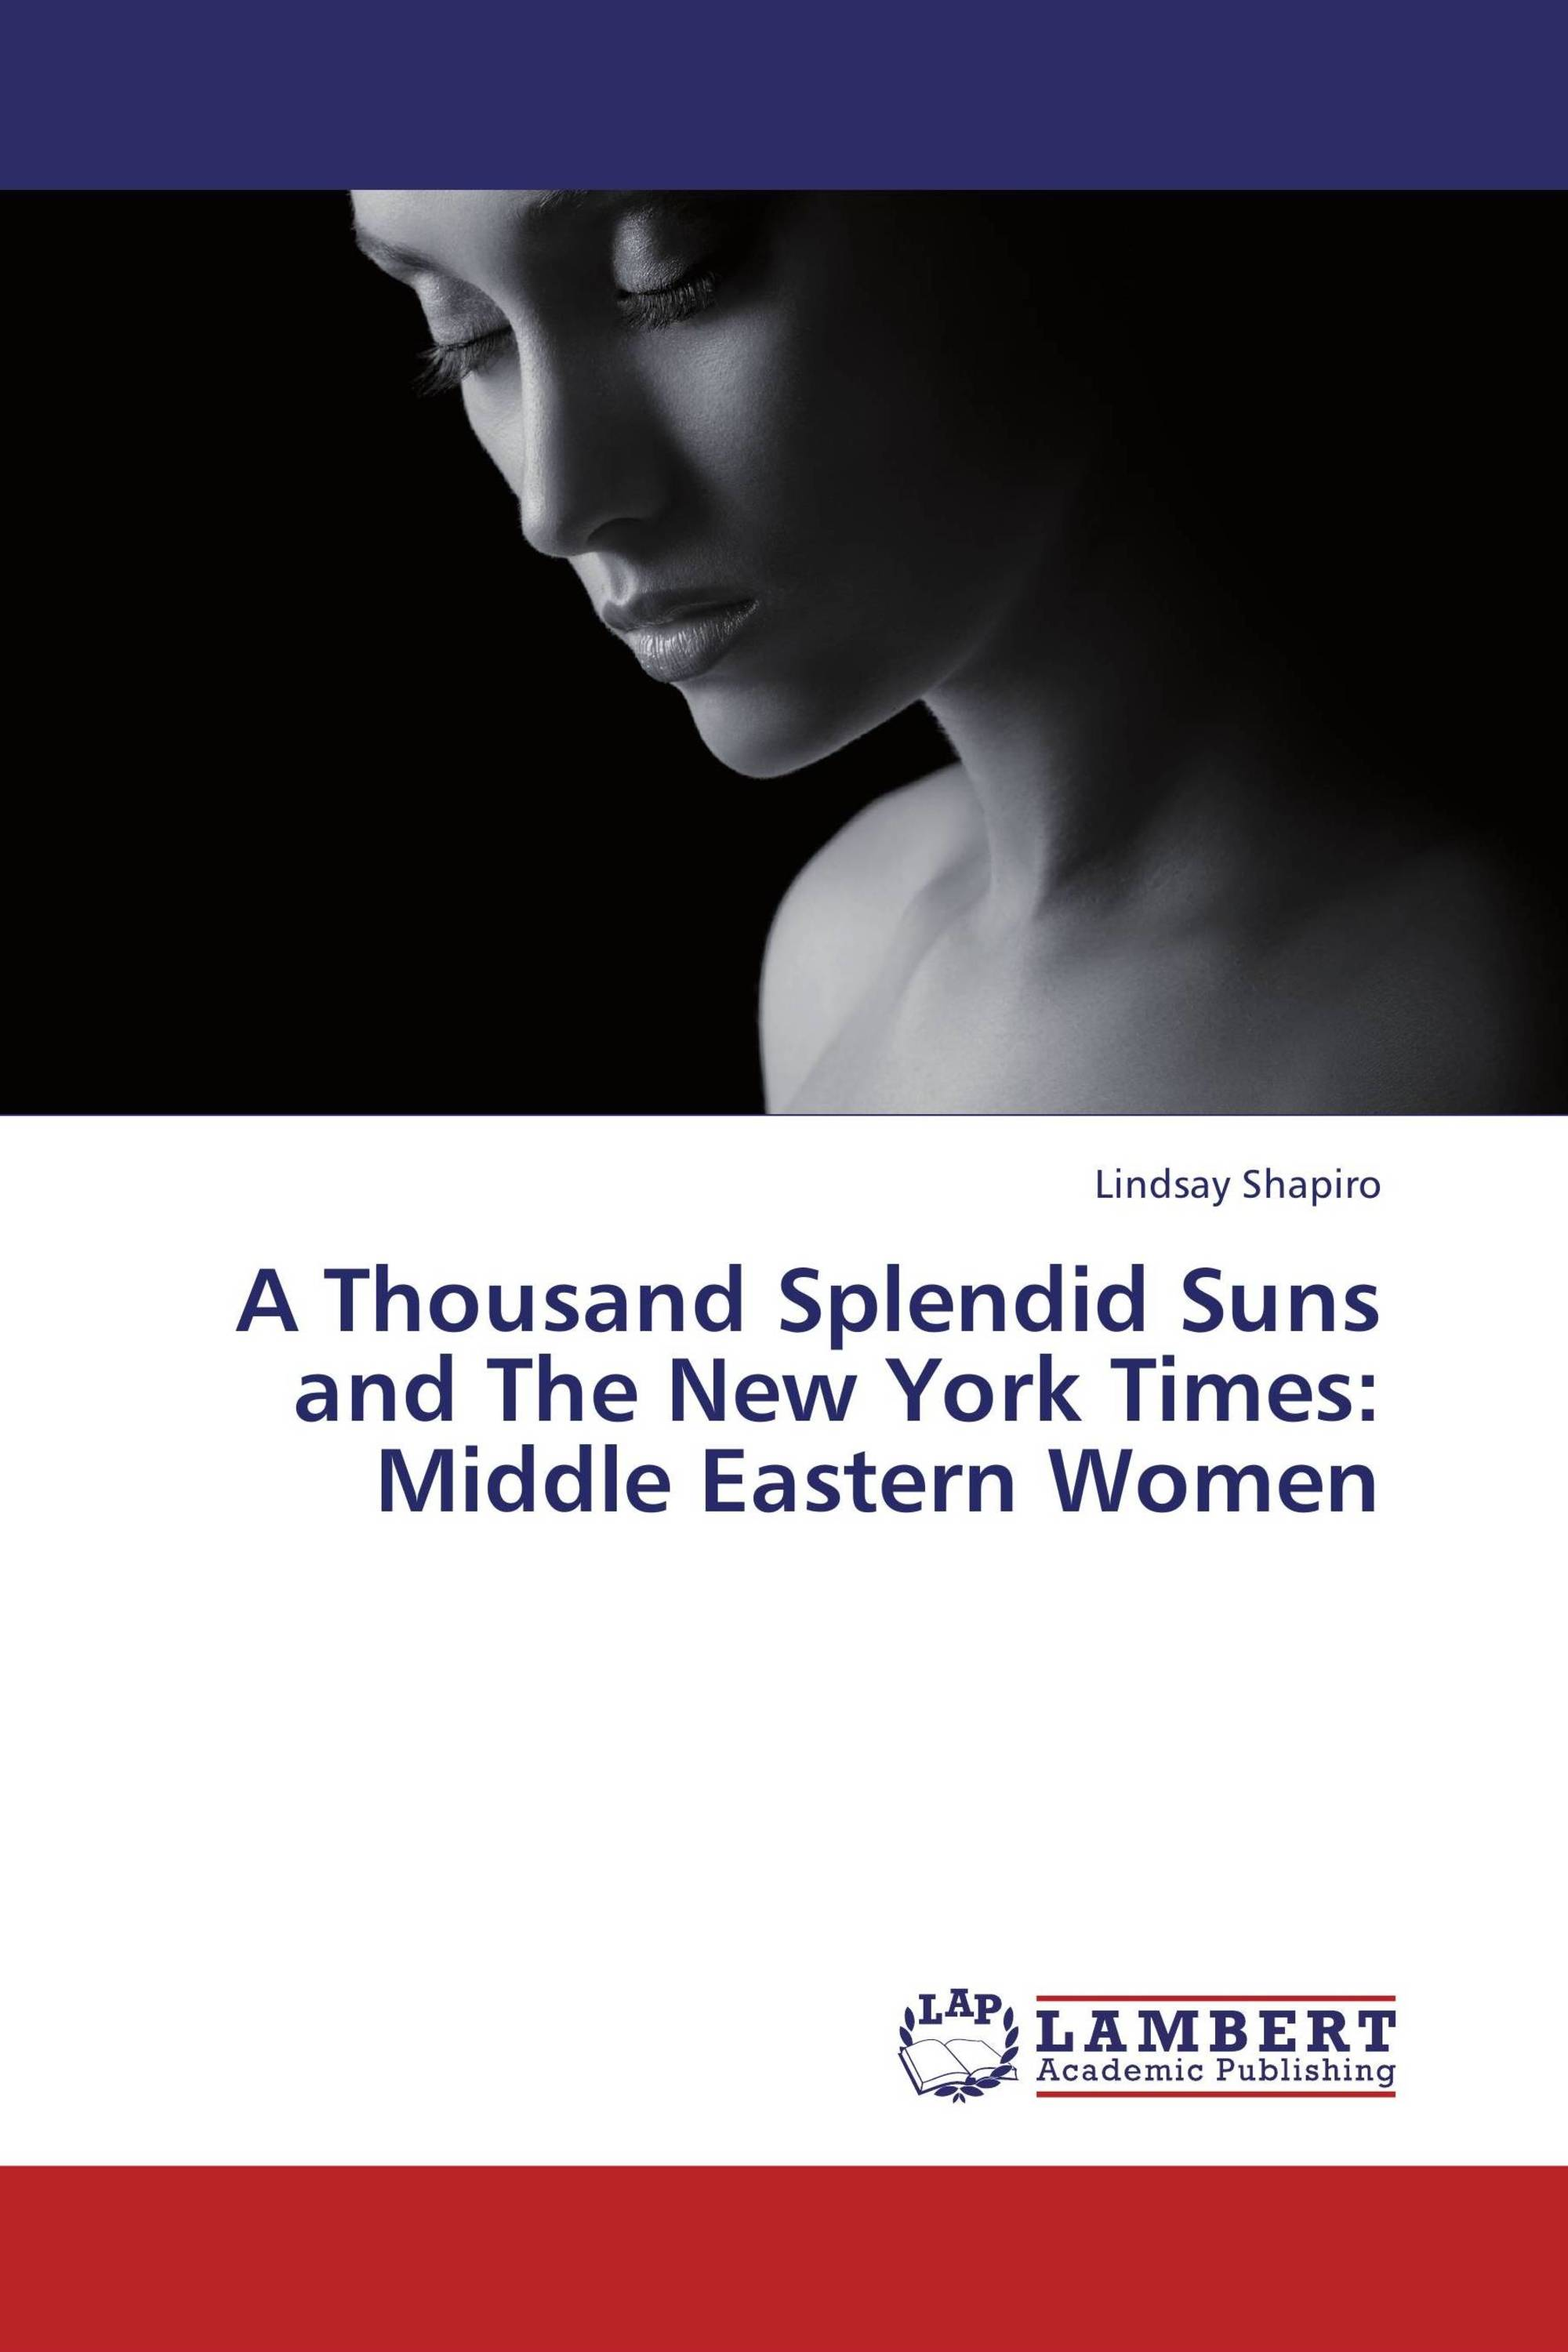 a thousand splendid suns and the new york times middle eastern a thousand splendid suns and the new york times middle eastern women